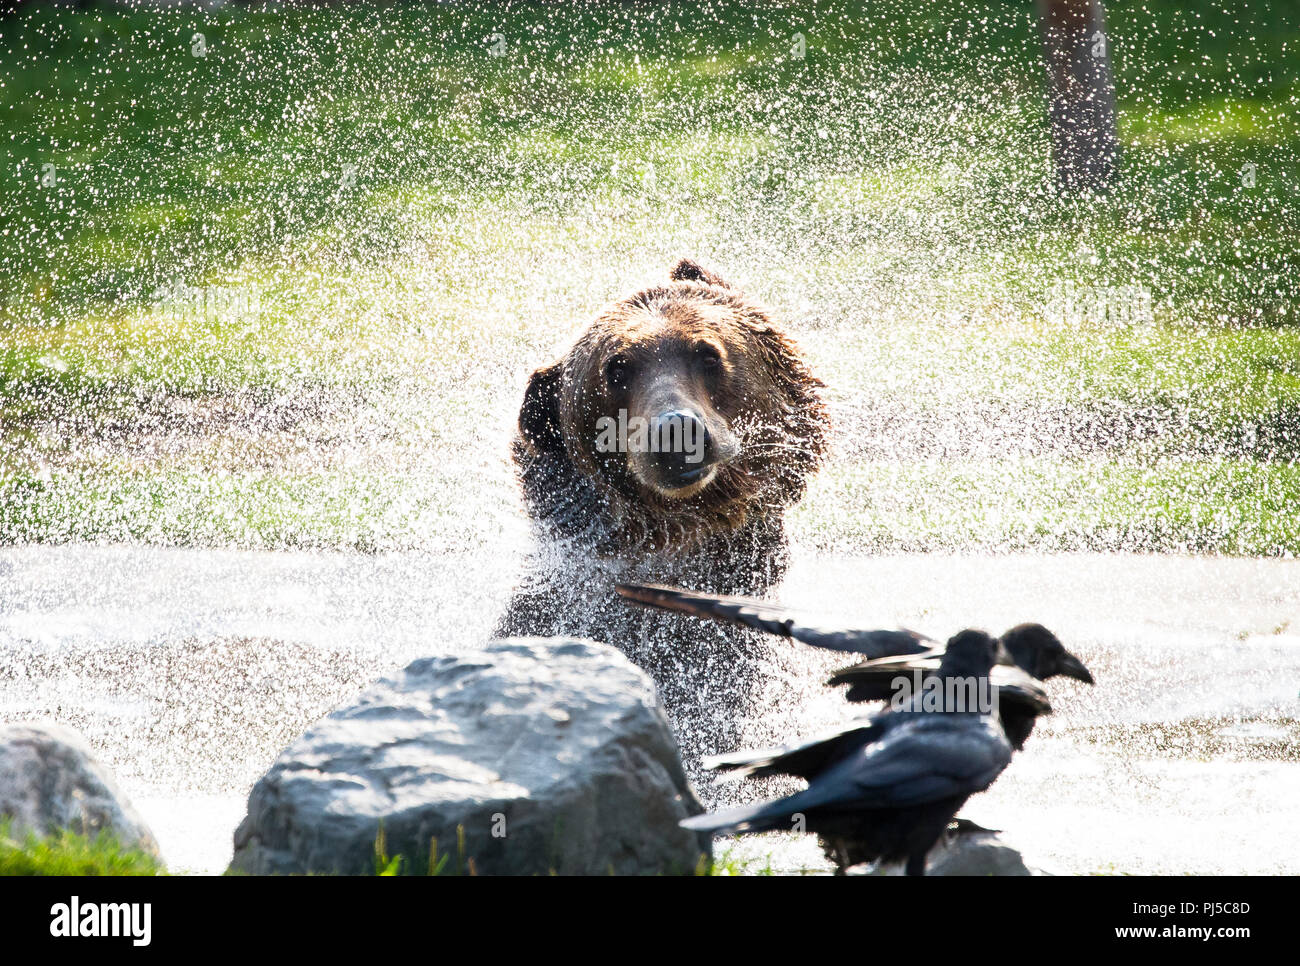 An adult brown bear (Ursus arctos horribilis) shakes off water as it exits a pond. - Stock Image